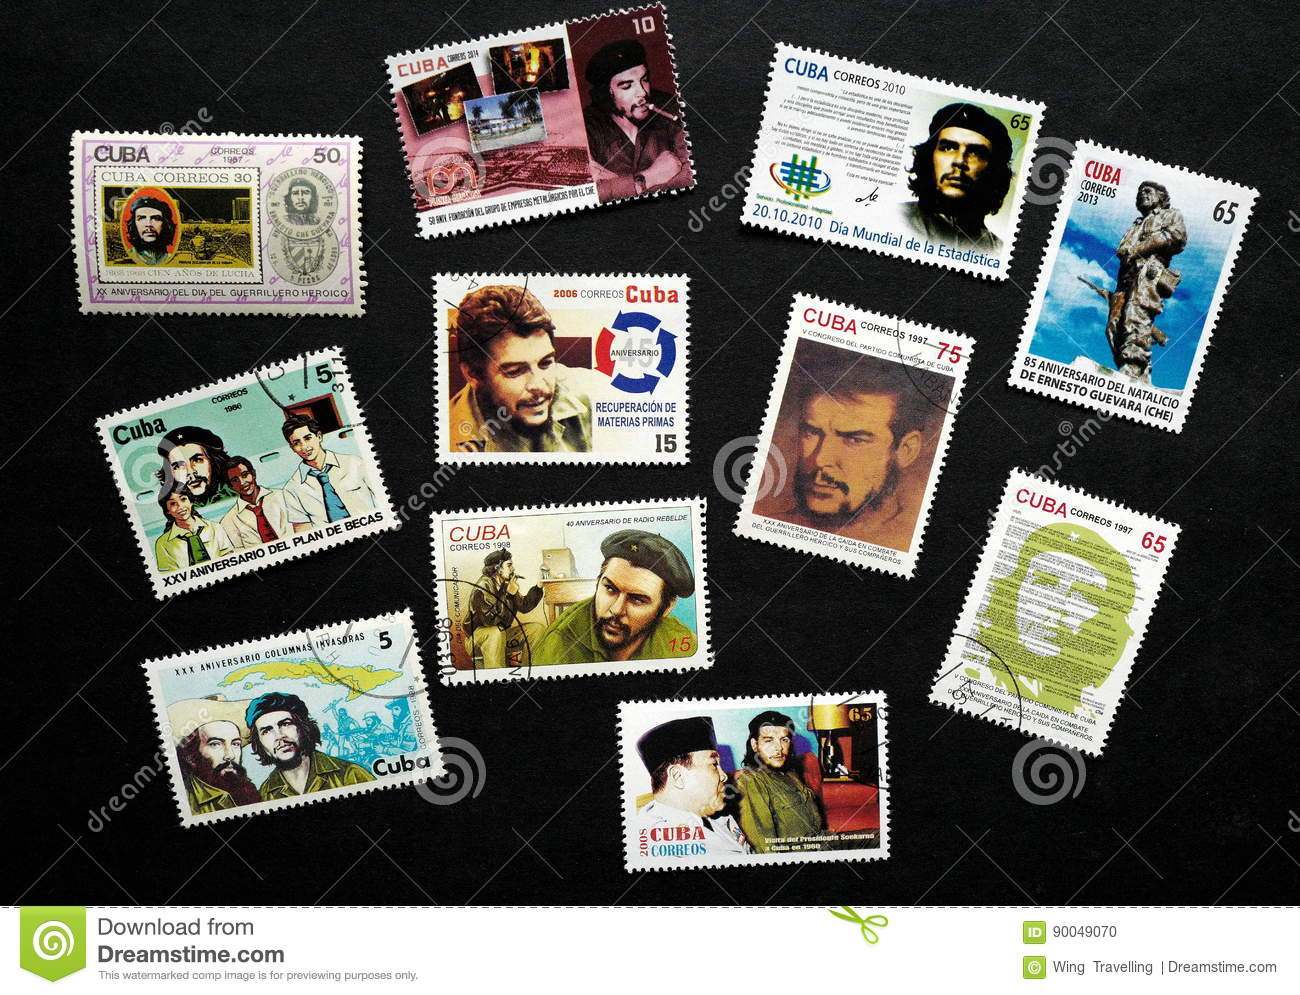 ernesto guevara iconic status essay Find out more about the history of che guevara, including videos, interesting articles, pictures born ernesto guevara de la serna on june 14, 1928.